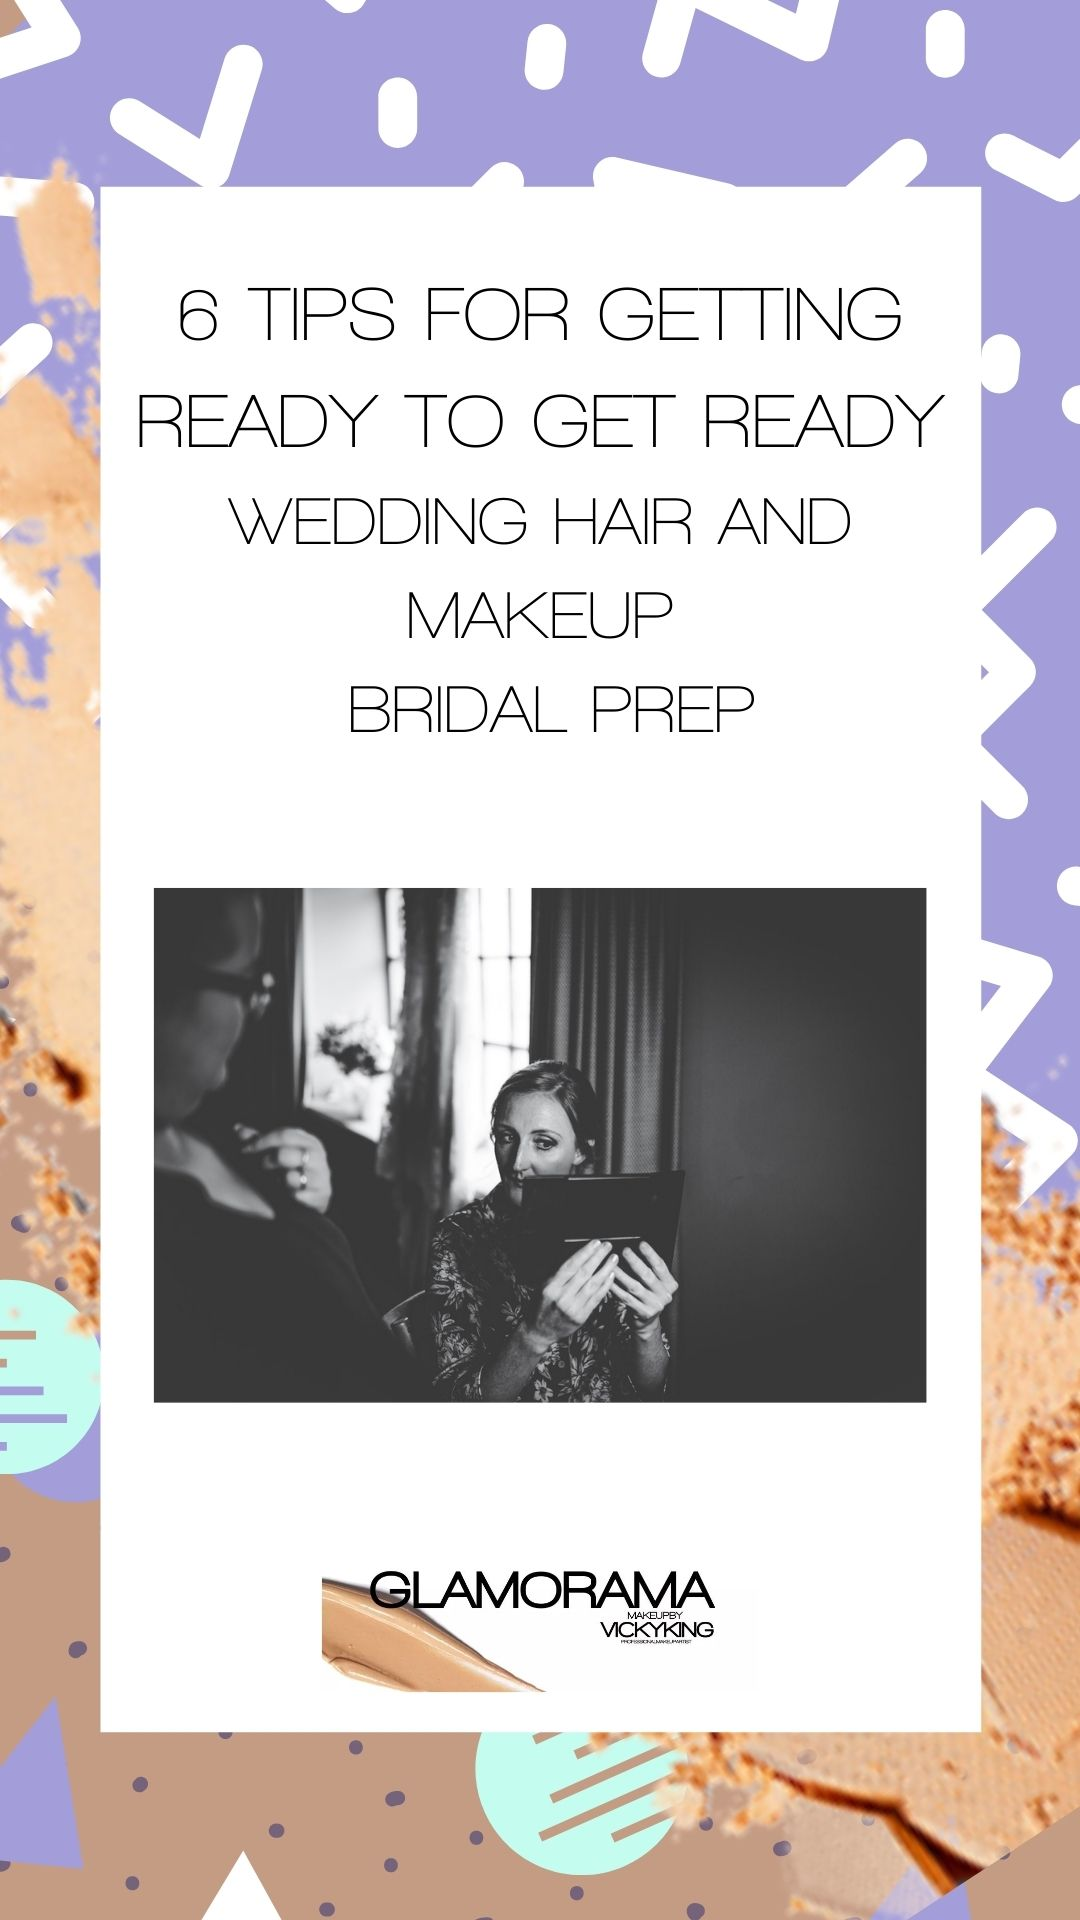 6 Tips for Getting Ready to Get Ready - Wedding Hair and Makeup - Bridal Prep  Rachel Joyce Photography